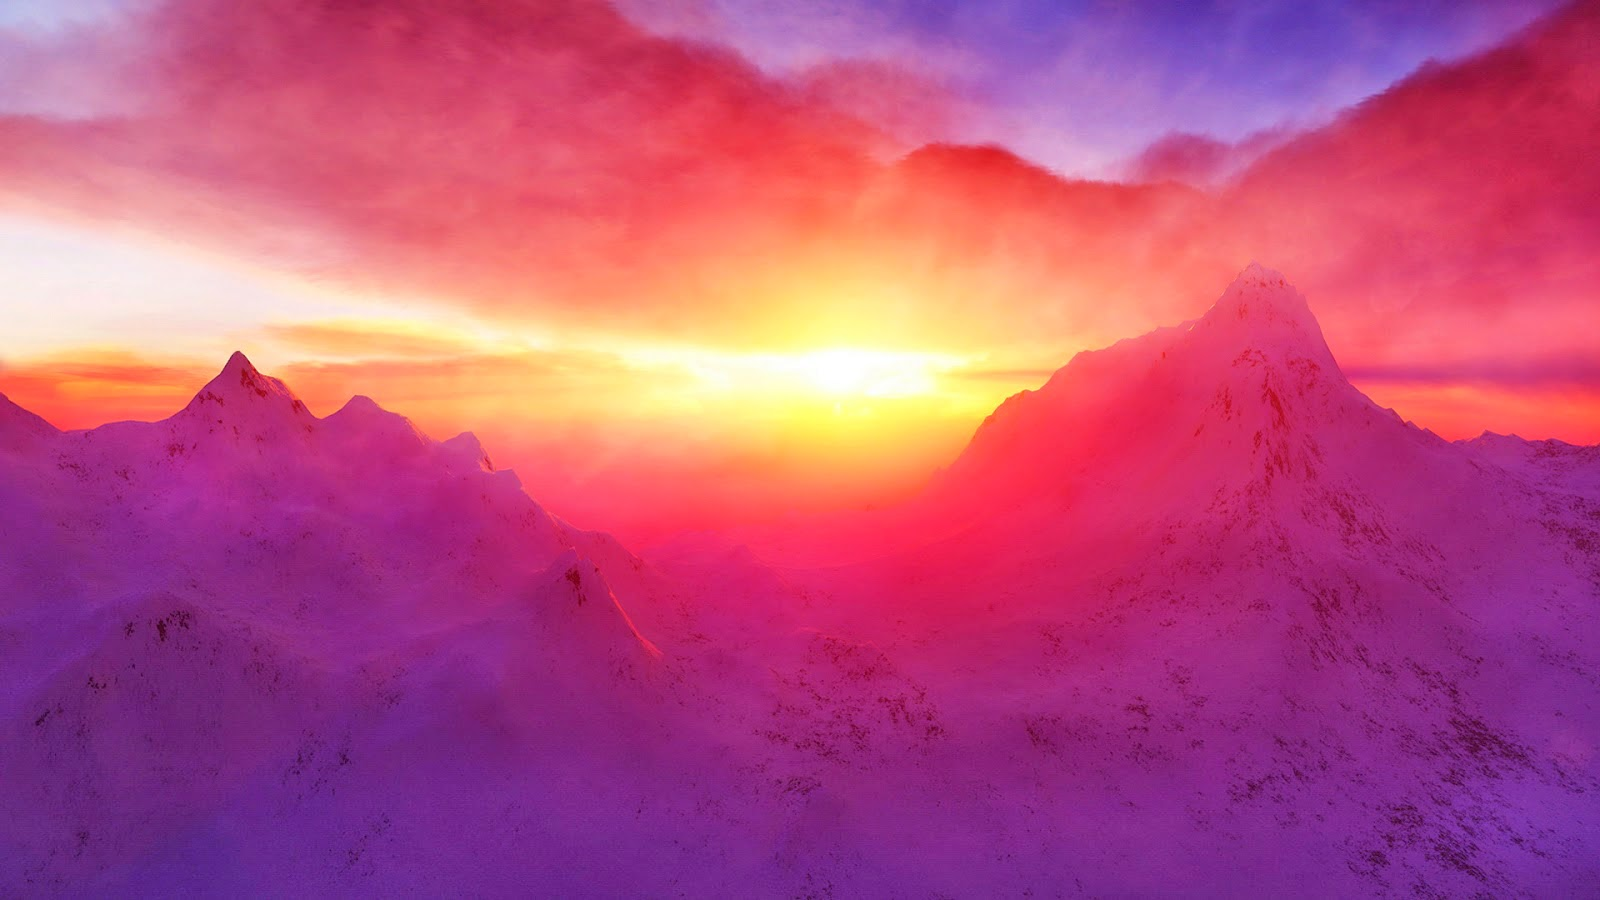 What bandnaam Pink Mountaintops betekent - sunset-snowy-mountains-wallpaper